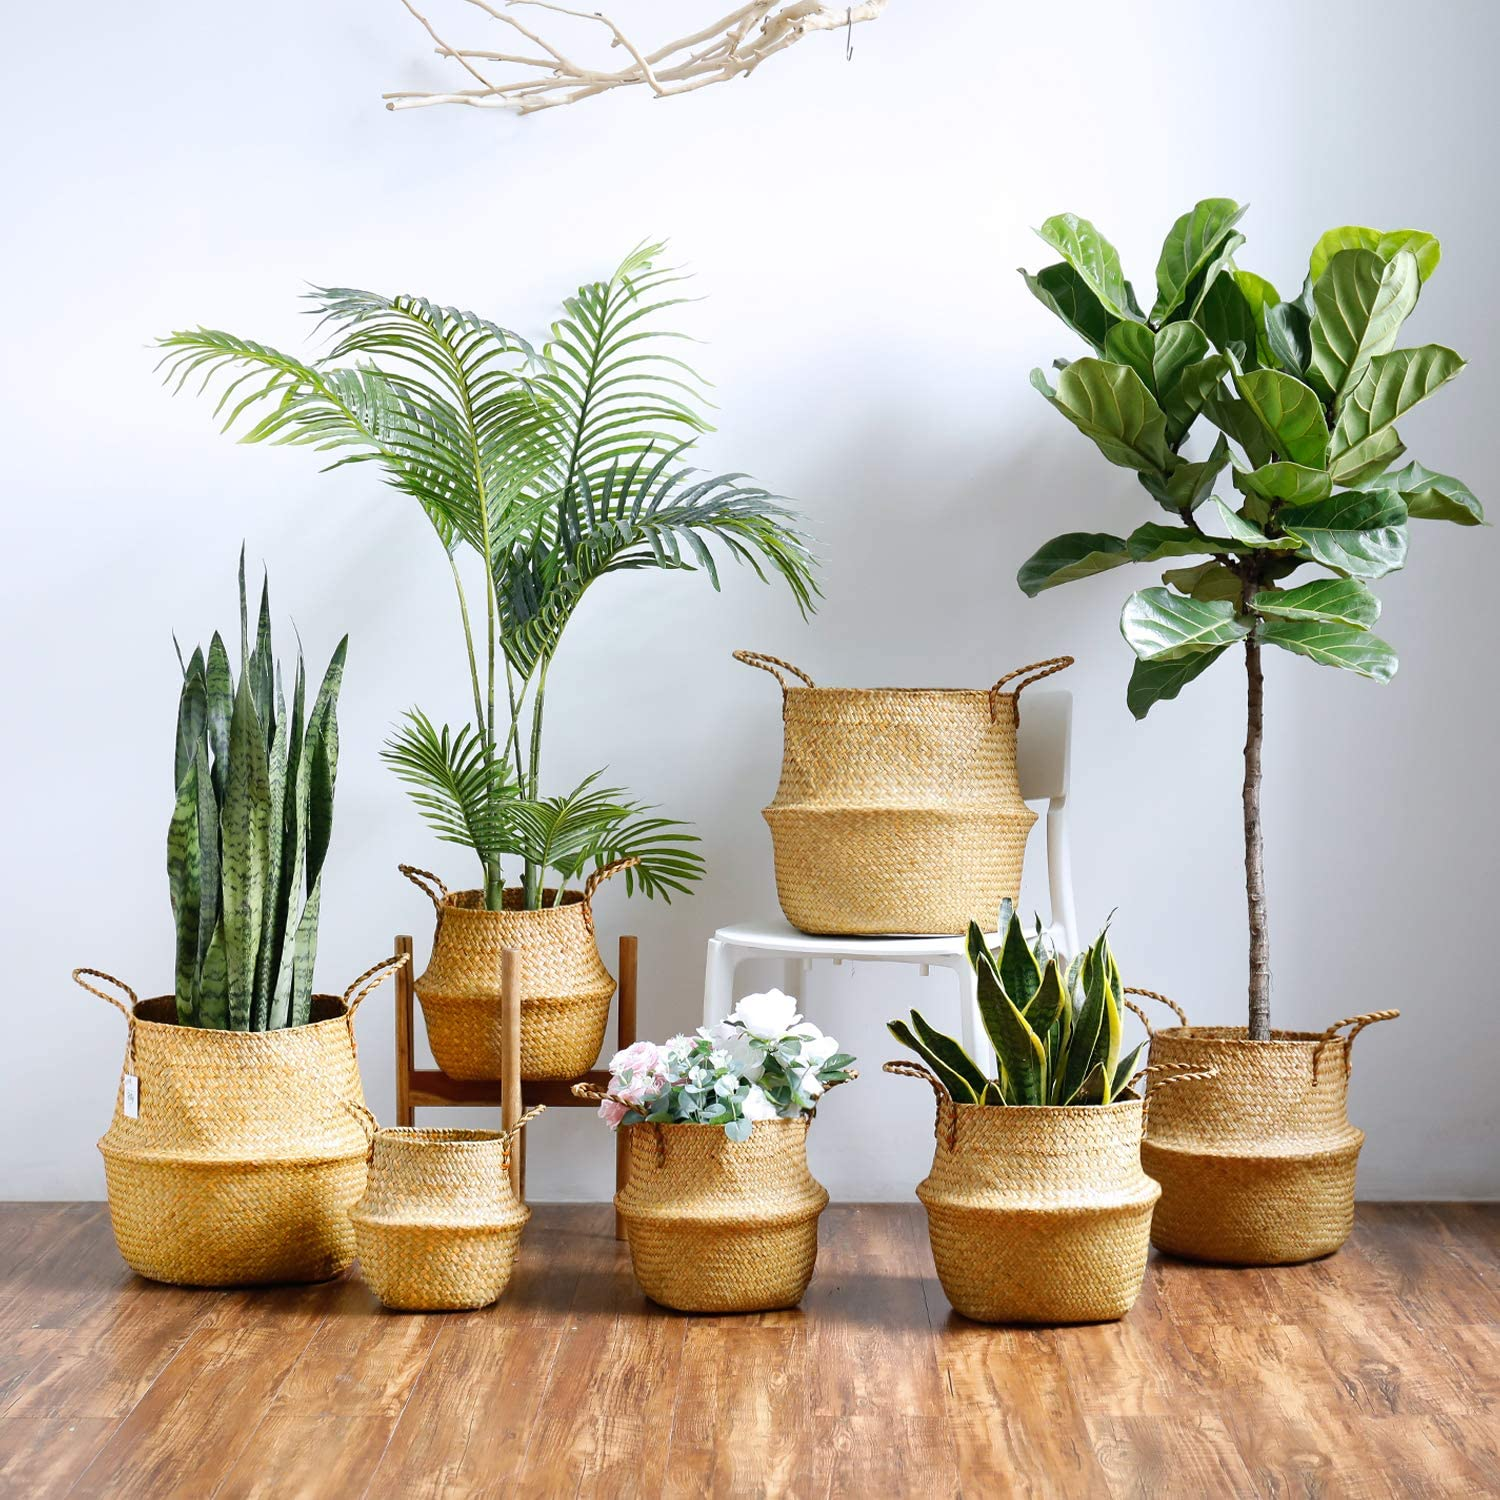 Middle Storage Laundry Plant Pot Cover Home Decor and Woven Straw Beach Bag Picnic Set of 2 Middle, Original+Black Hand Woven Belly Basket with Handles POTEY 720501 Seagrass Plant Basket